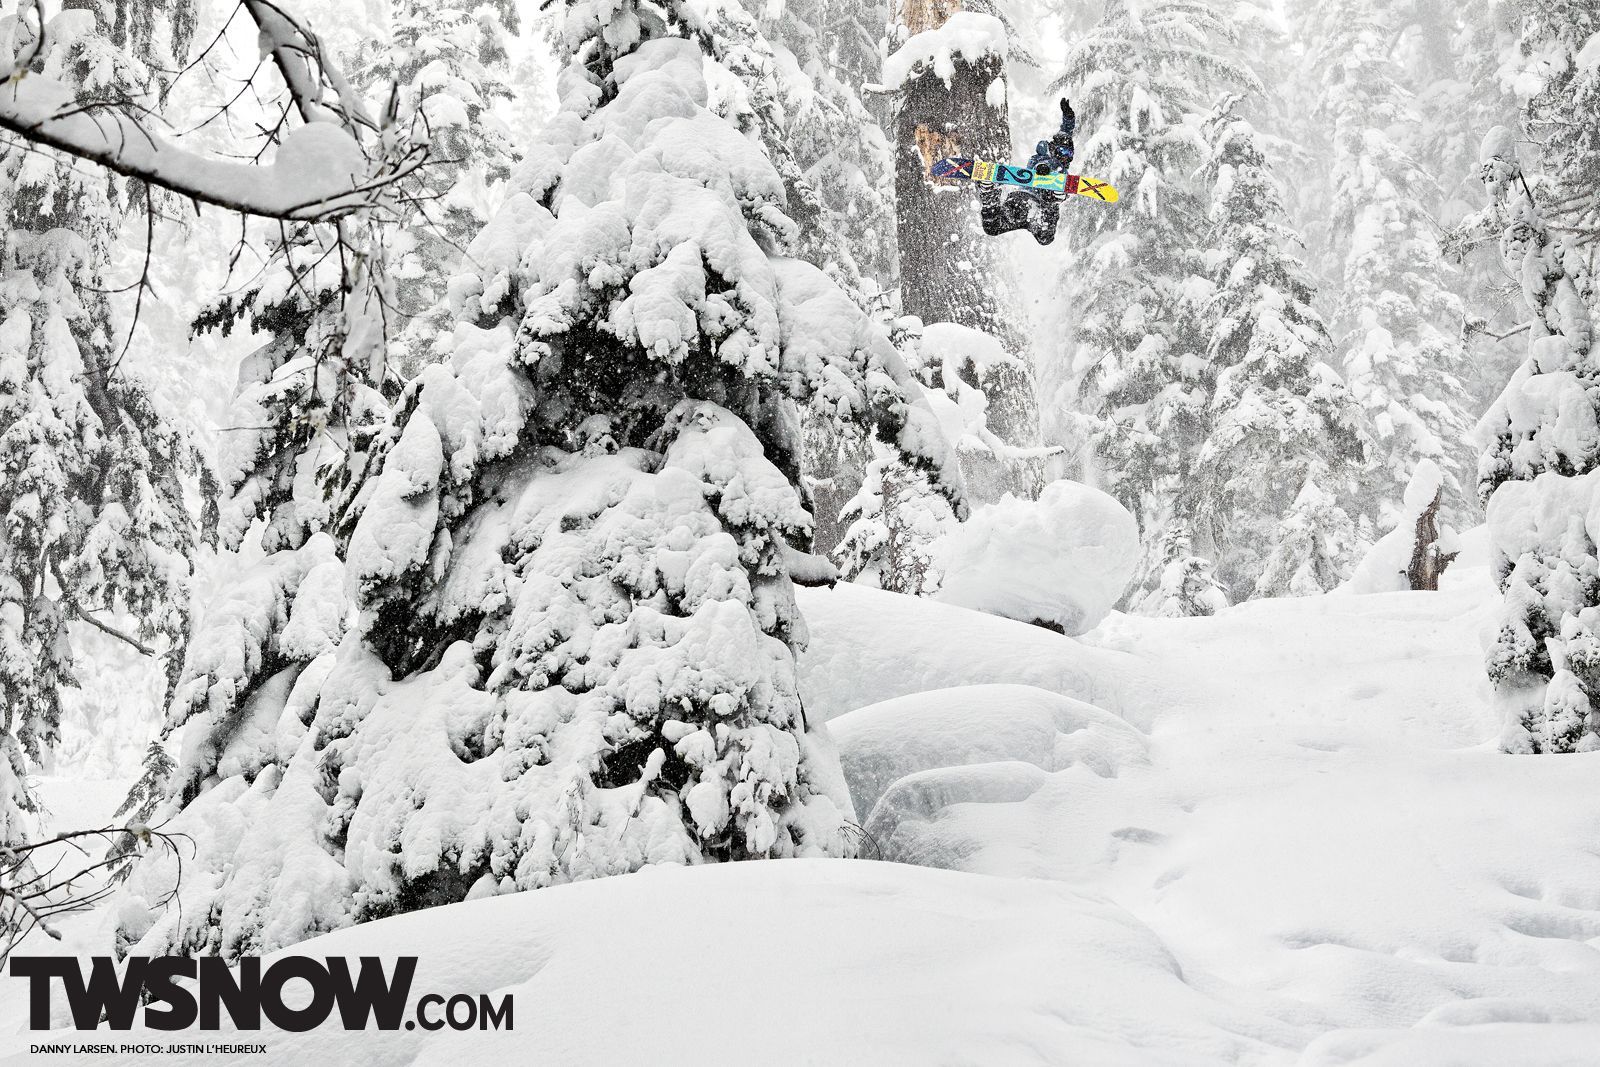 1600x1067 Wallpaper Wednesday: Real Talk | TransWorld SNOWboarding